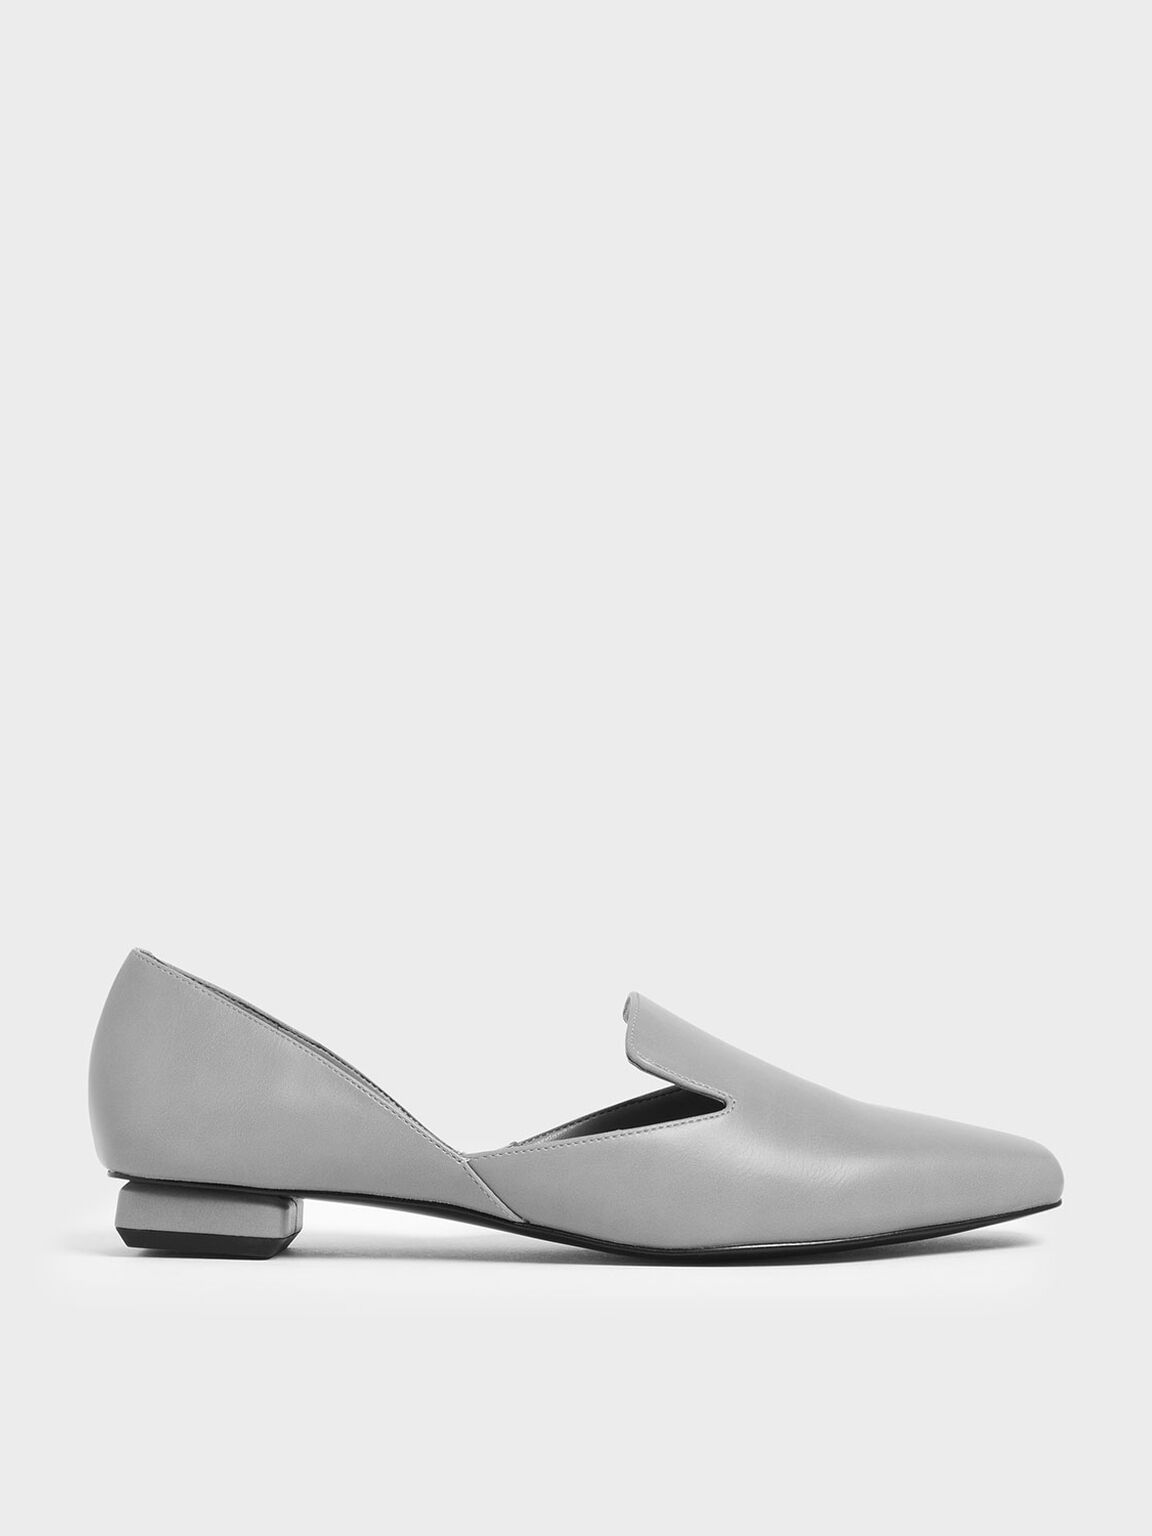 Square Toe D'Orsay Loafers, Grey, hi-res